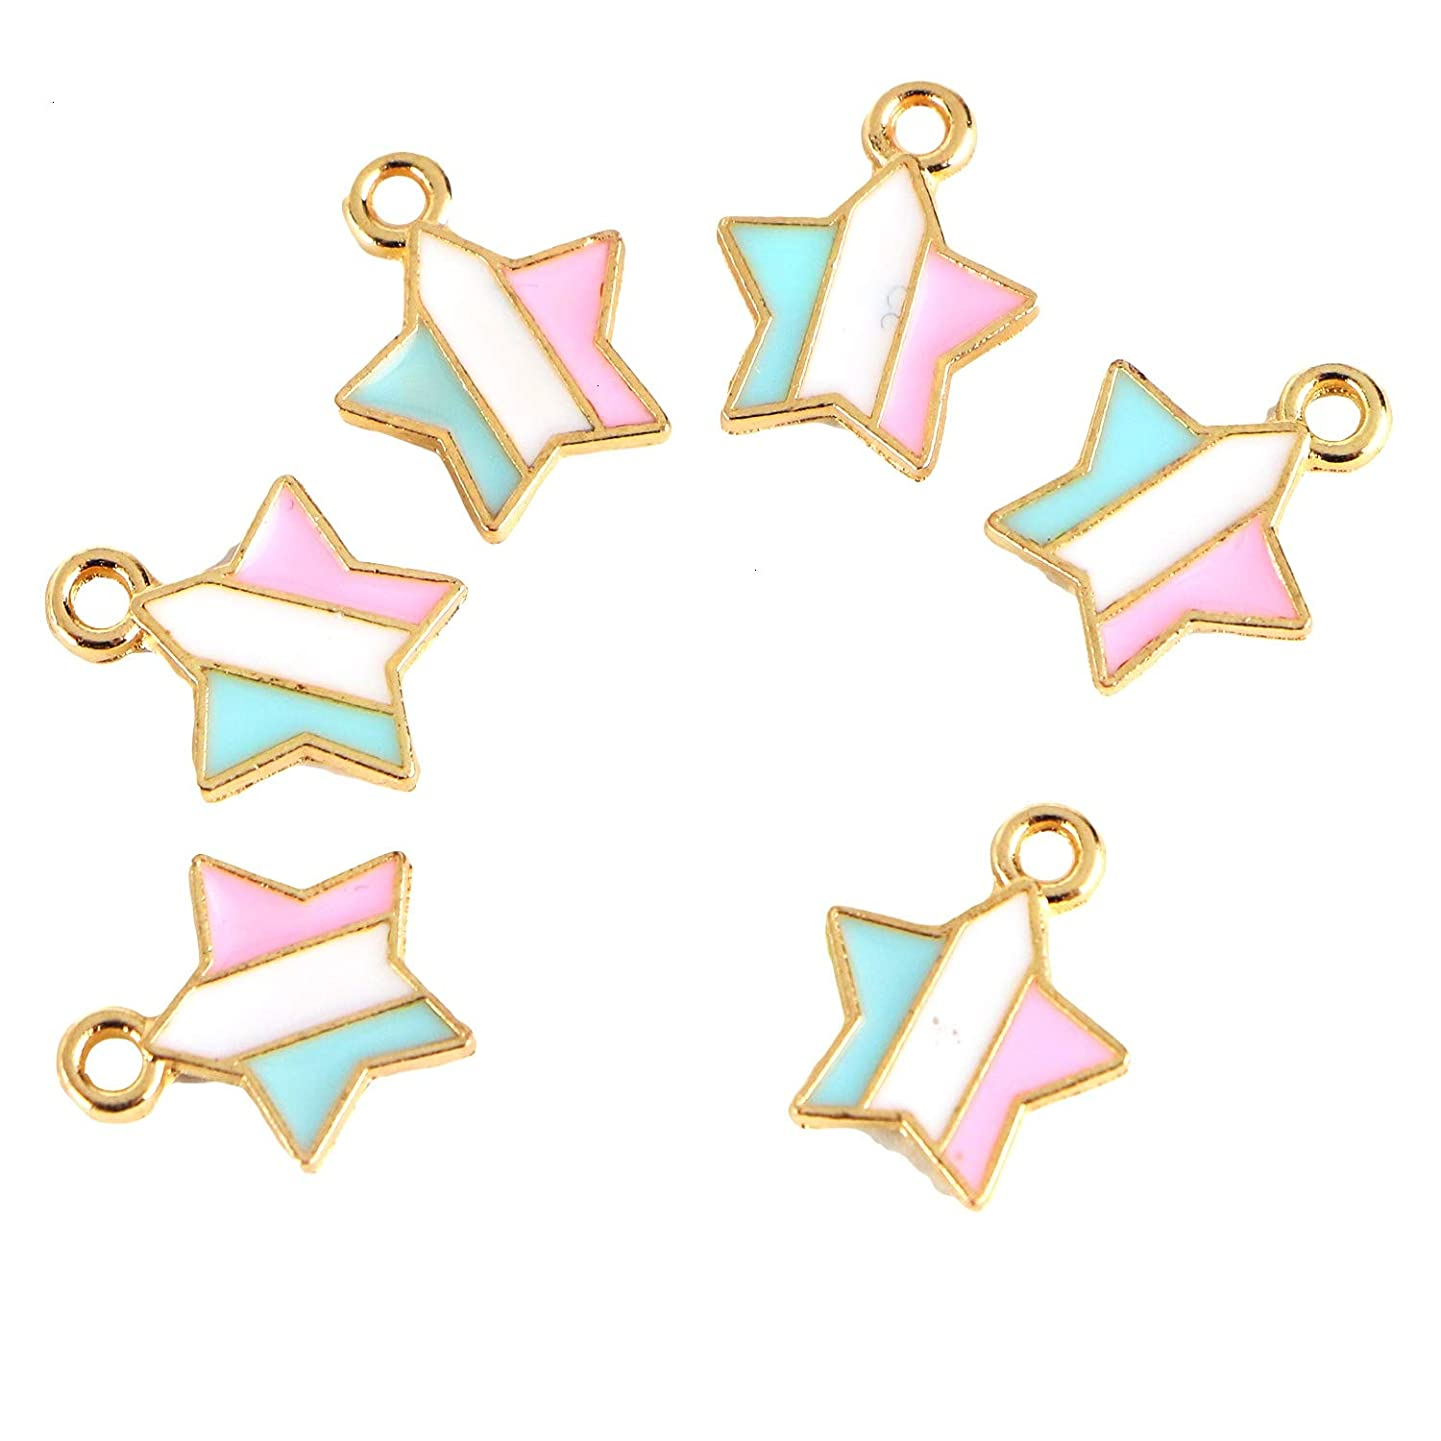 Monrocco 50Pcs Enamel Star Charm 14x12mm Alloy Star Charms Bulk Star Charm Pendants for Jewelry Making and Crafting